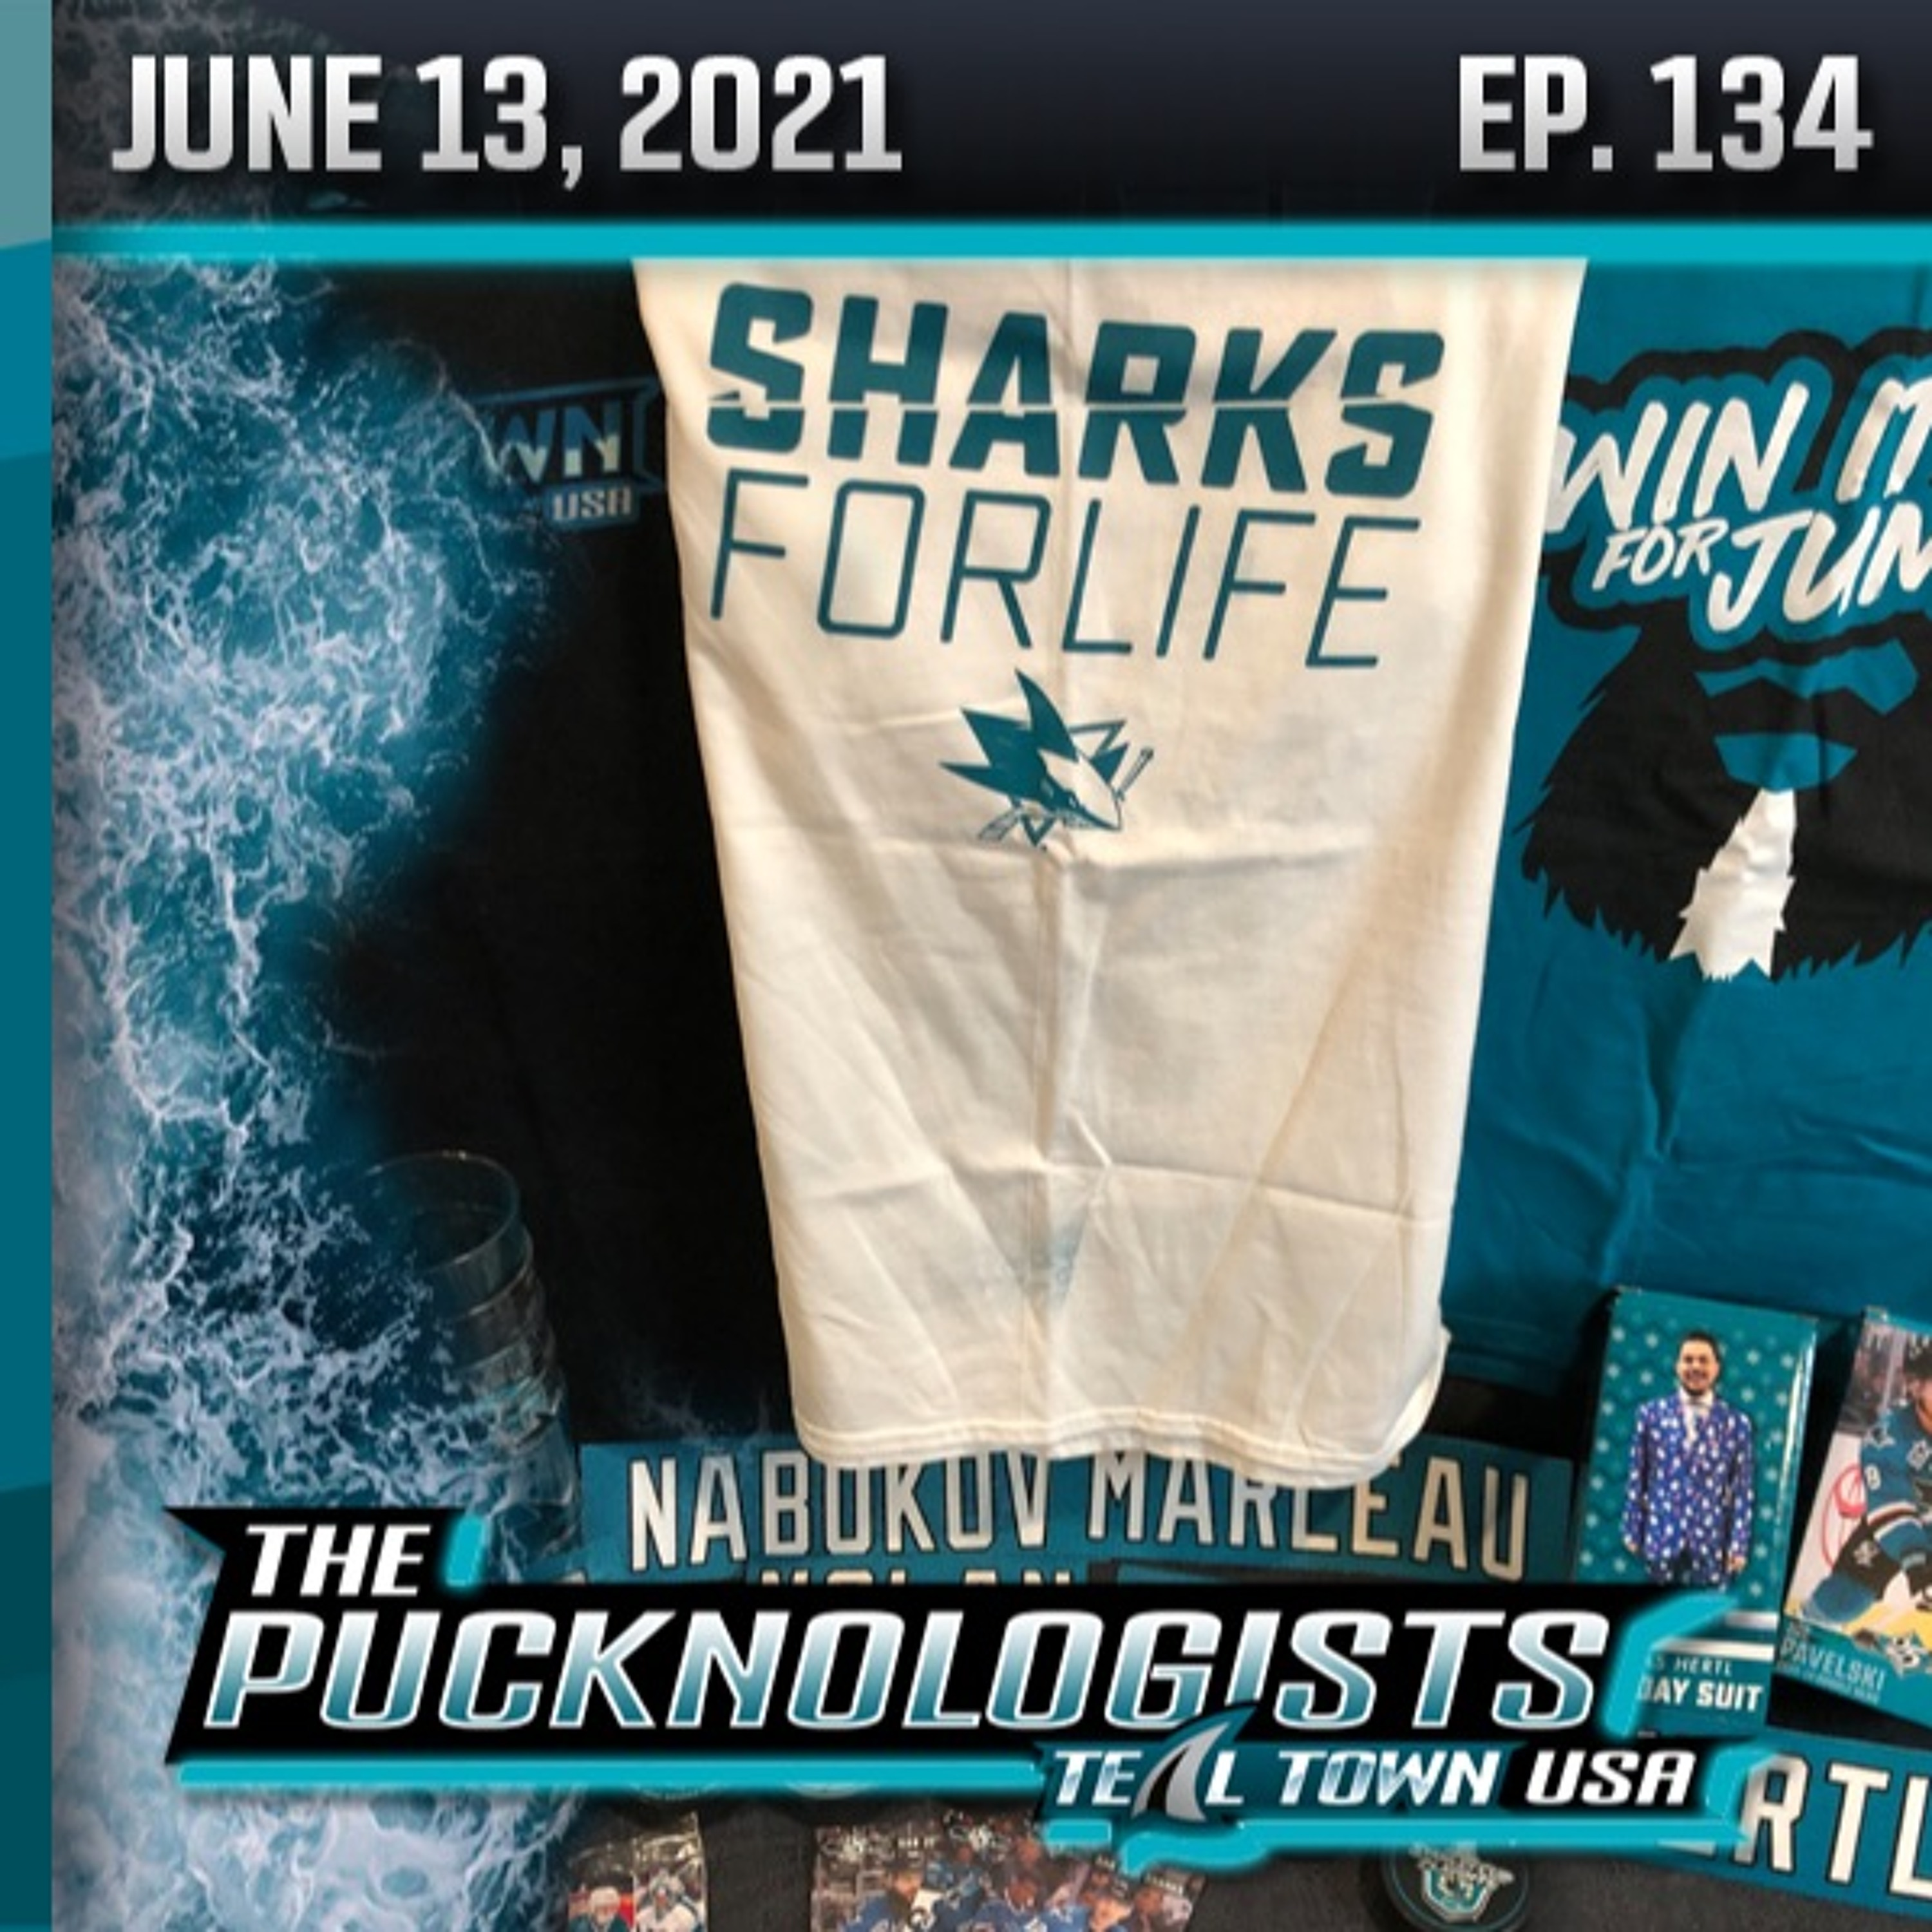 Summer Check-In, Weekly Summer Giveaway, Jersey Mash-Ups - The Pucknologists 134